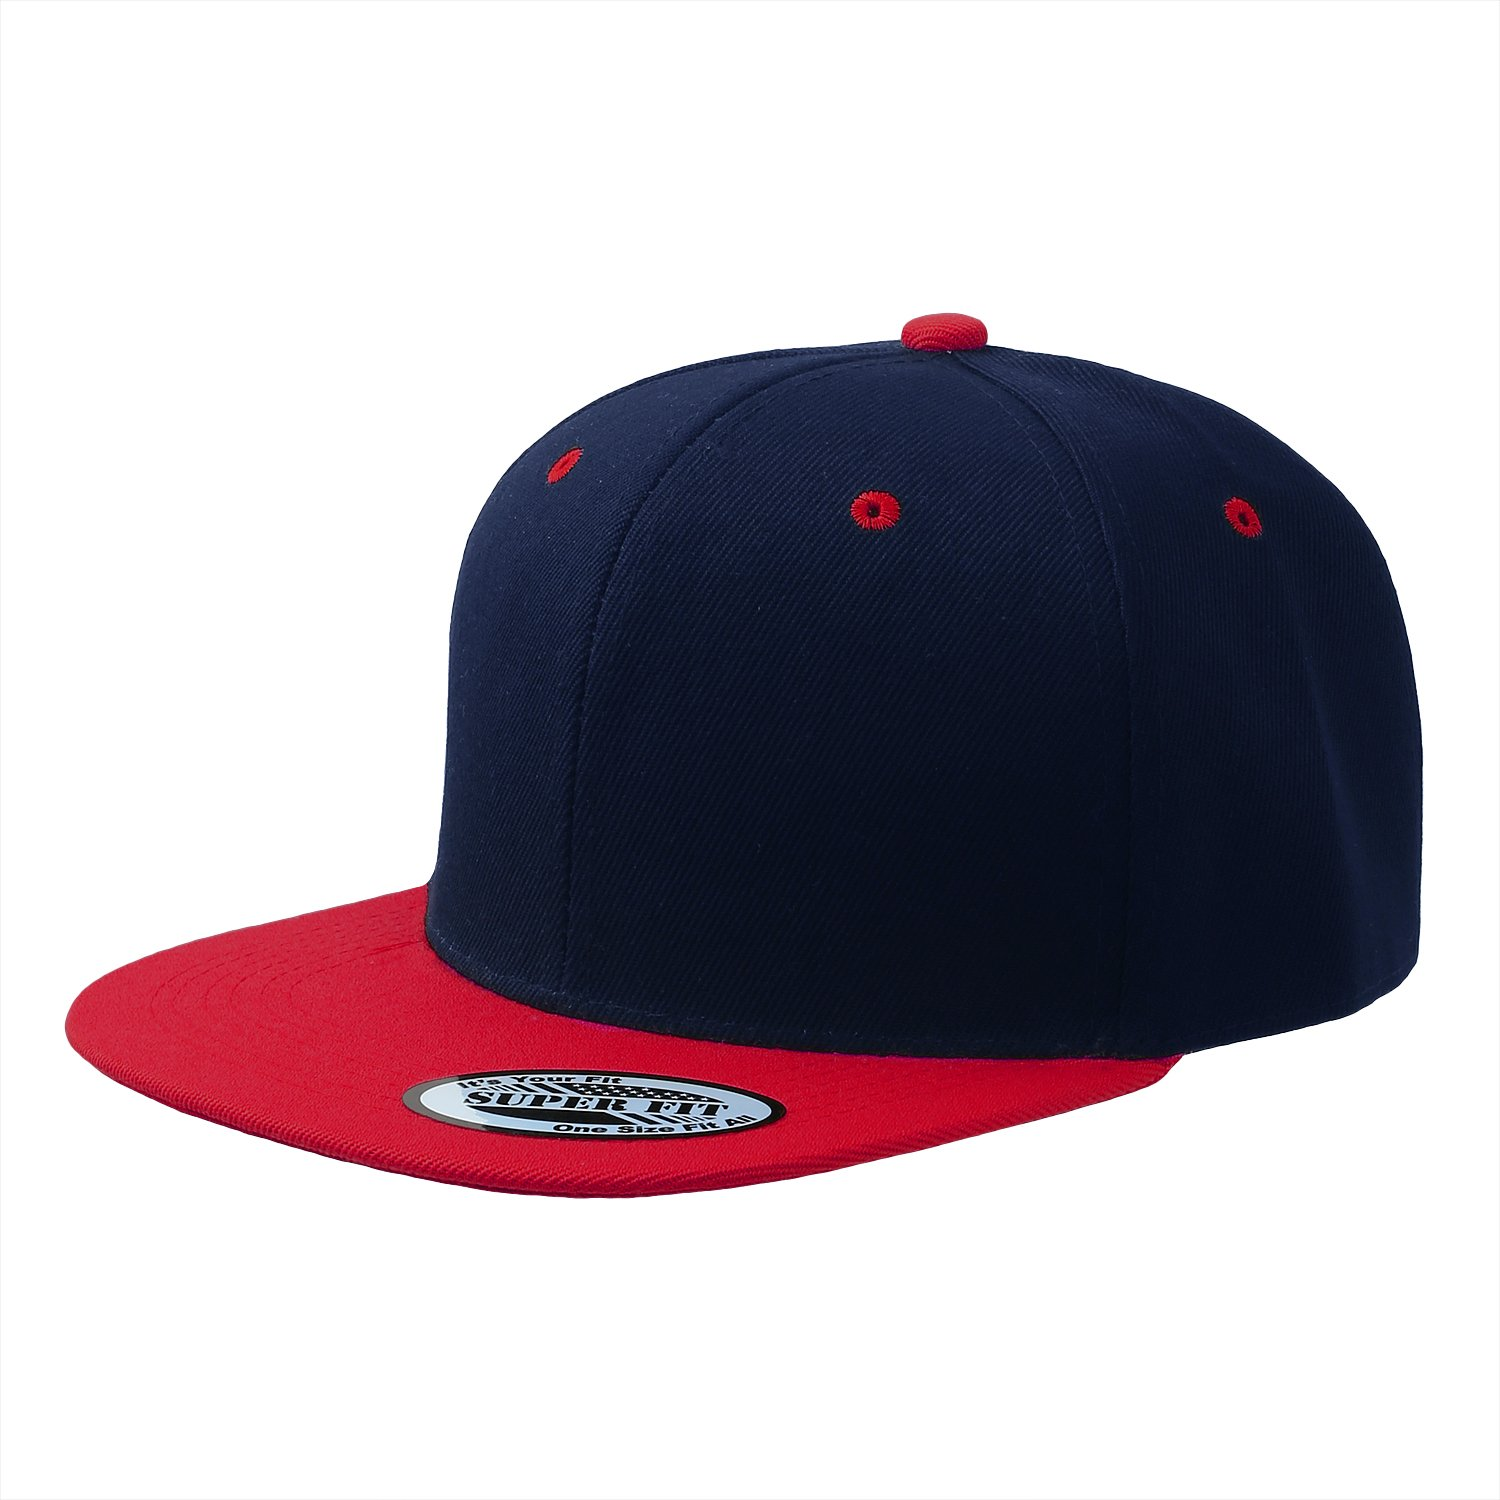 3862f885afbe4 Blank Adjustable Flat Bill Plain Snapback Hats Caps (All Colors) (One Size,  Black) at Amazon Men's Clothing store: